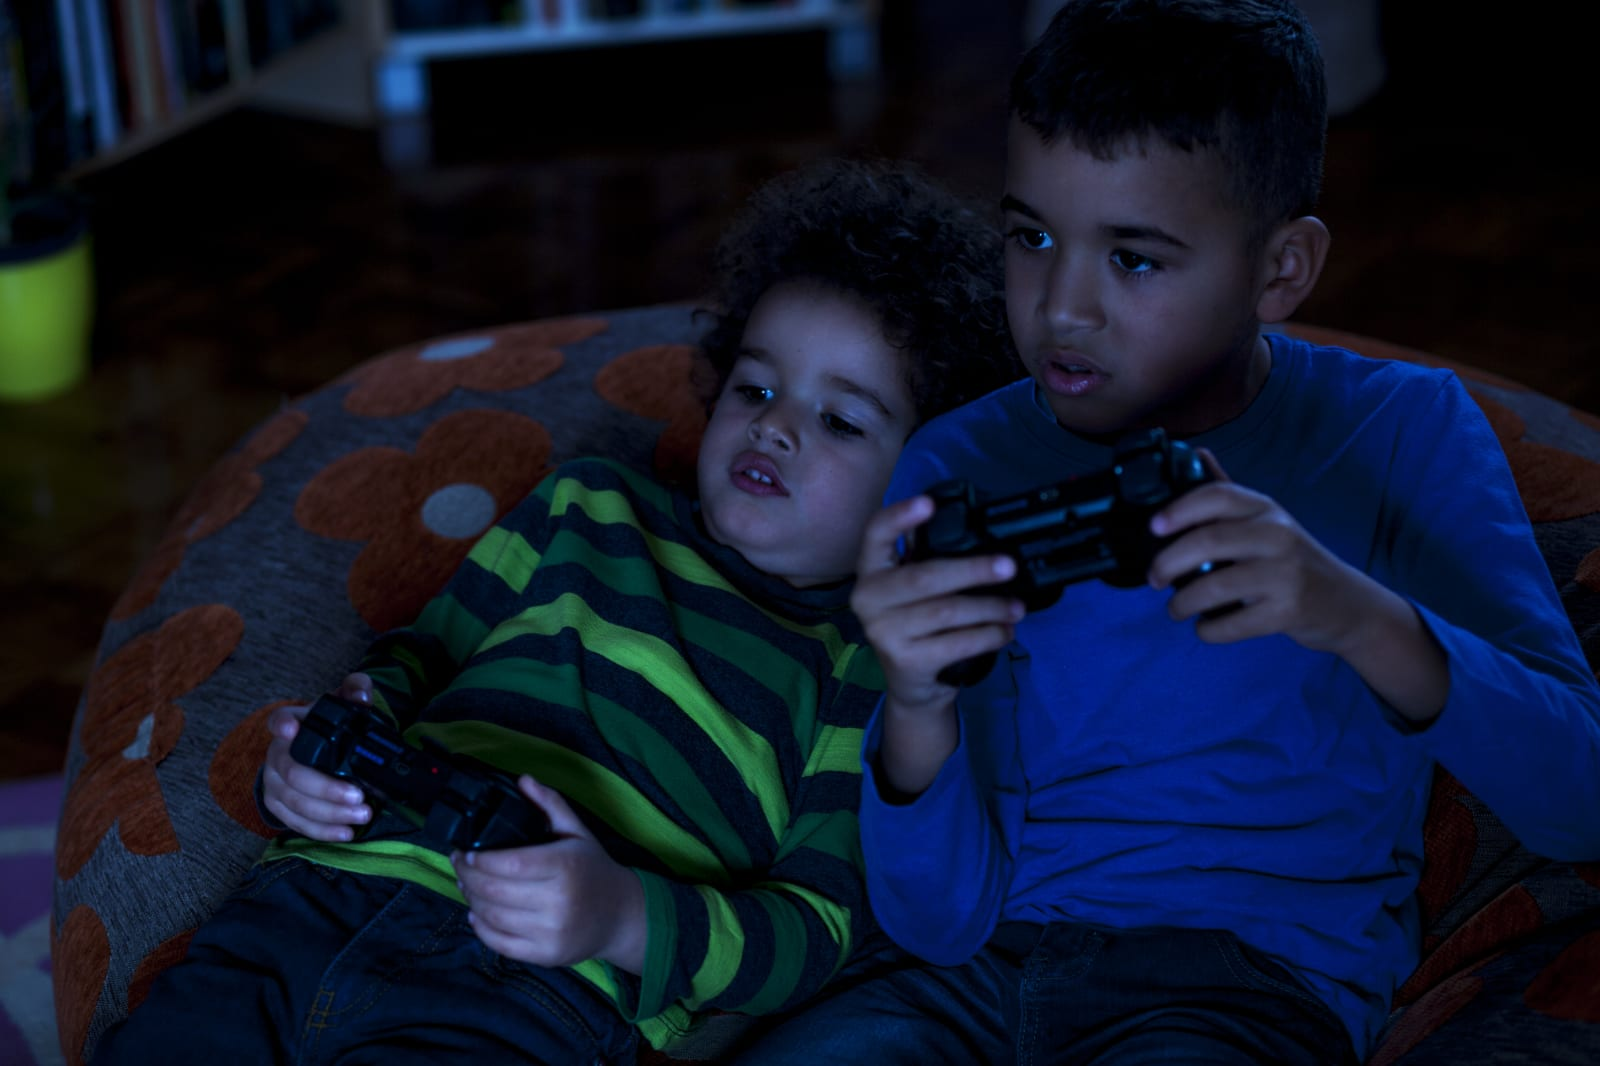 Two Friends Playing Video Game, at Night